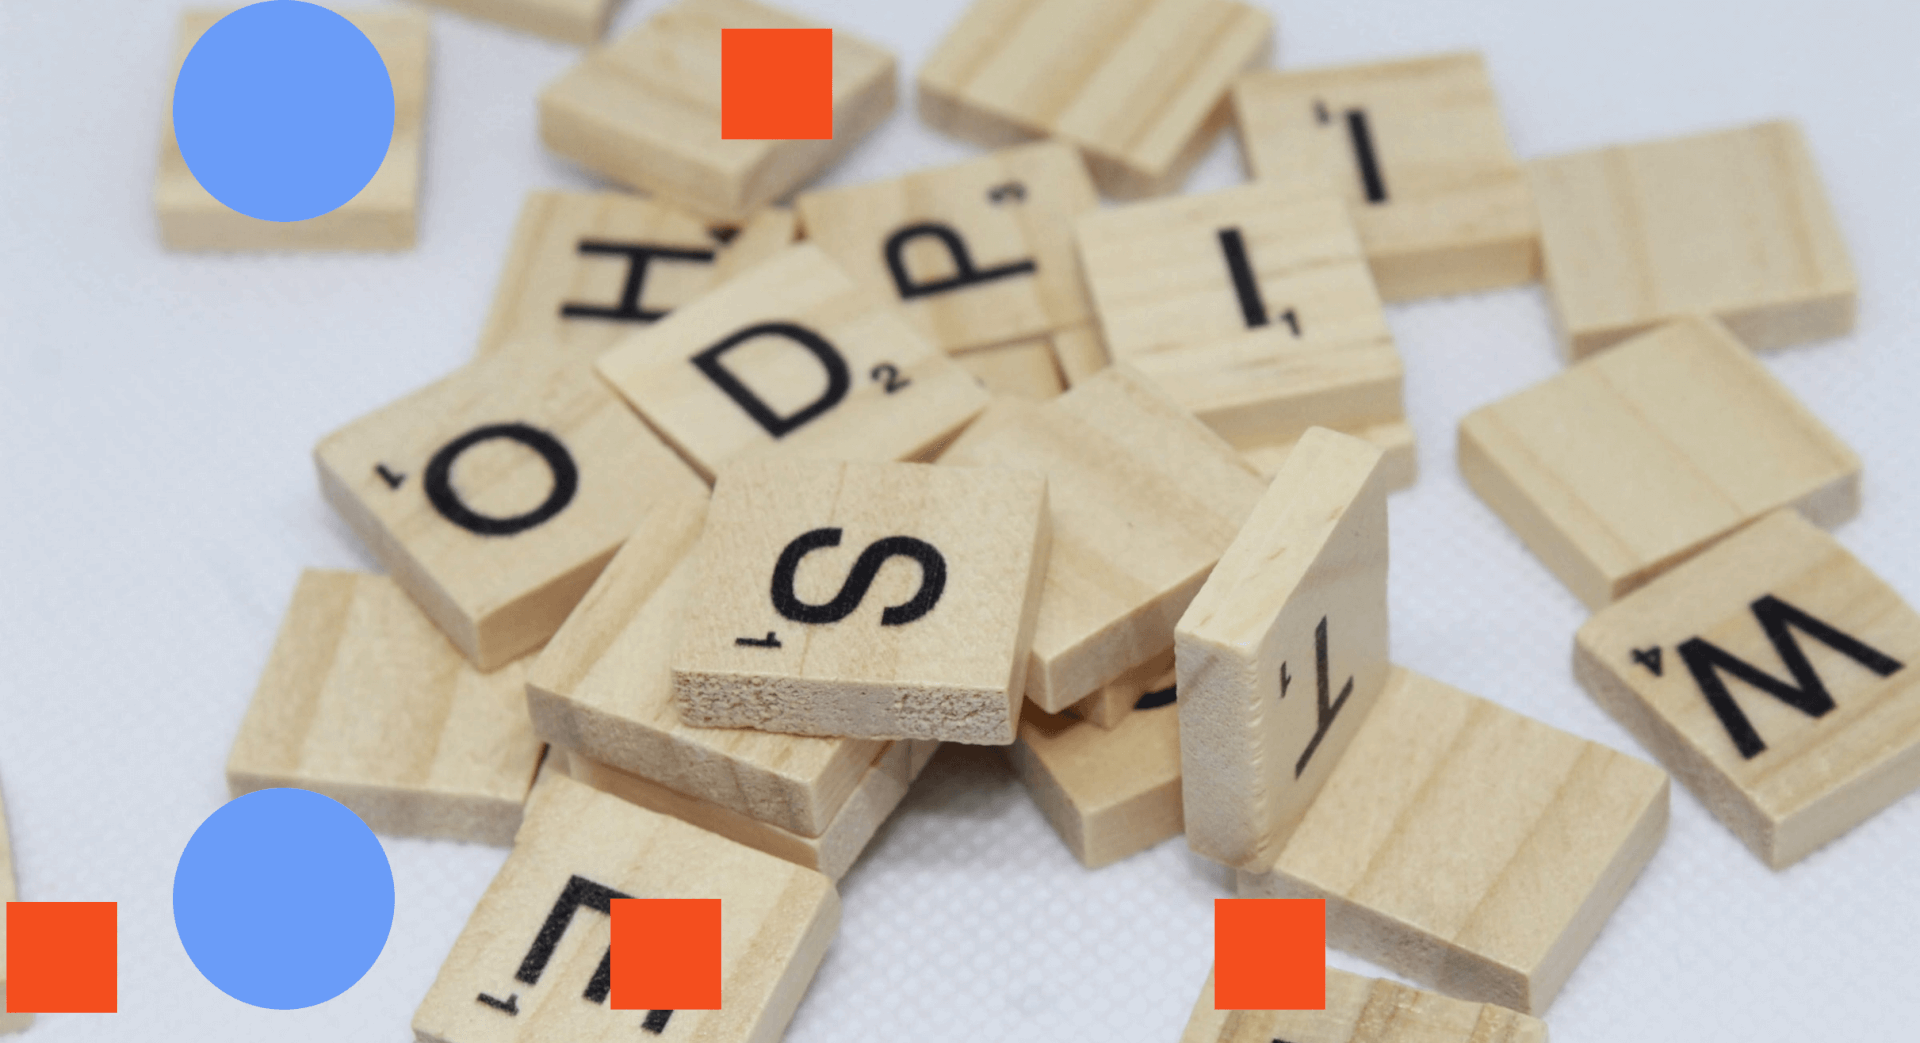 If you're looking to find out what is test driven development, think of scrabble tiles that you don't put together immediately after seeing a combination, but checking each and every piece carefully first to find the winningful move.